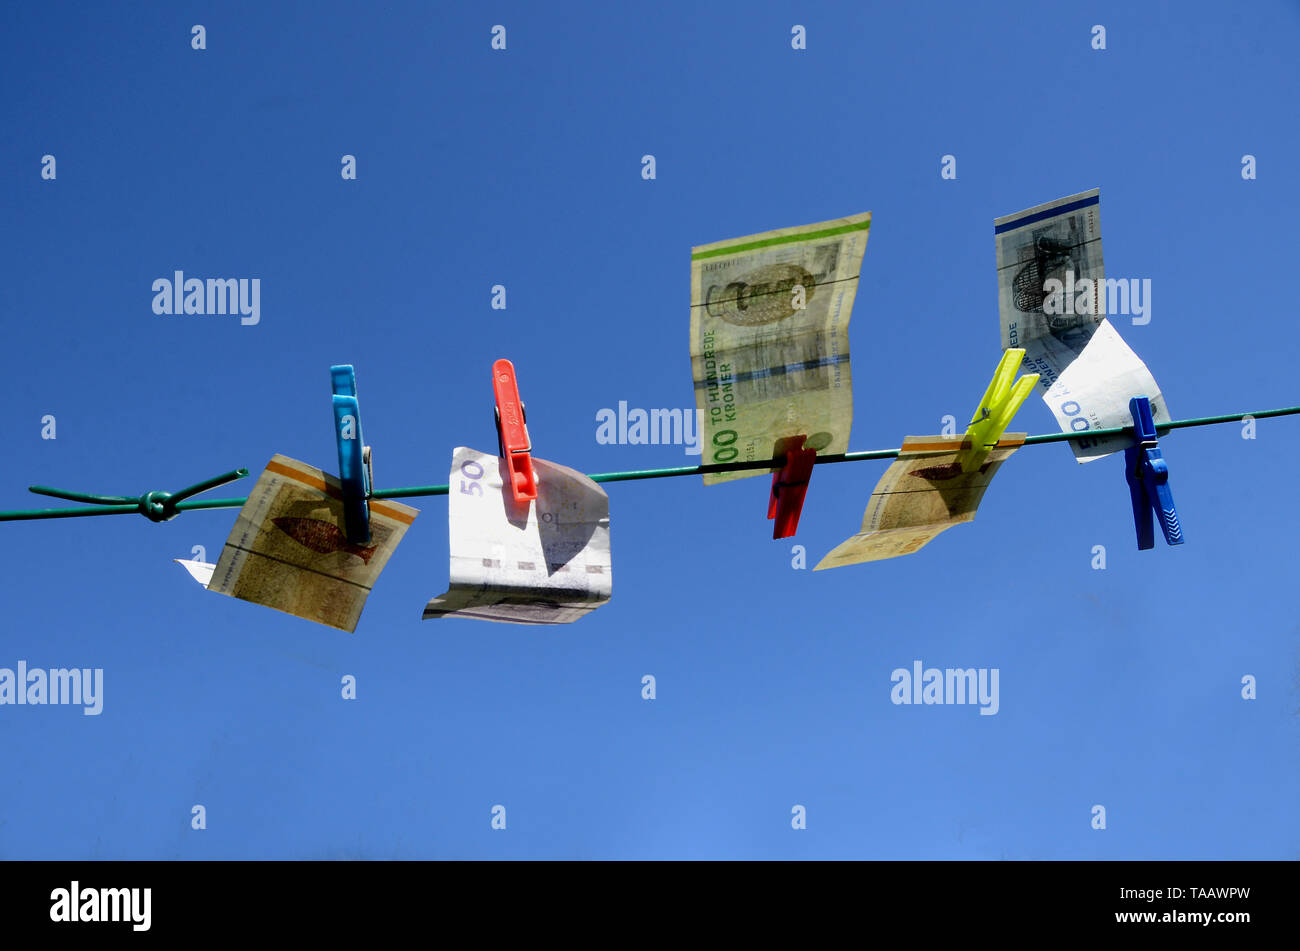 Sonderborg, Denmark - April 9, 2019: Banknotes hanging on a repaired washing line, with a blue sky as background, suggesting that money launder has ta - Stock Image